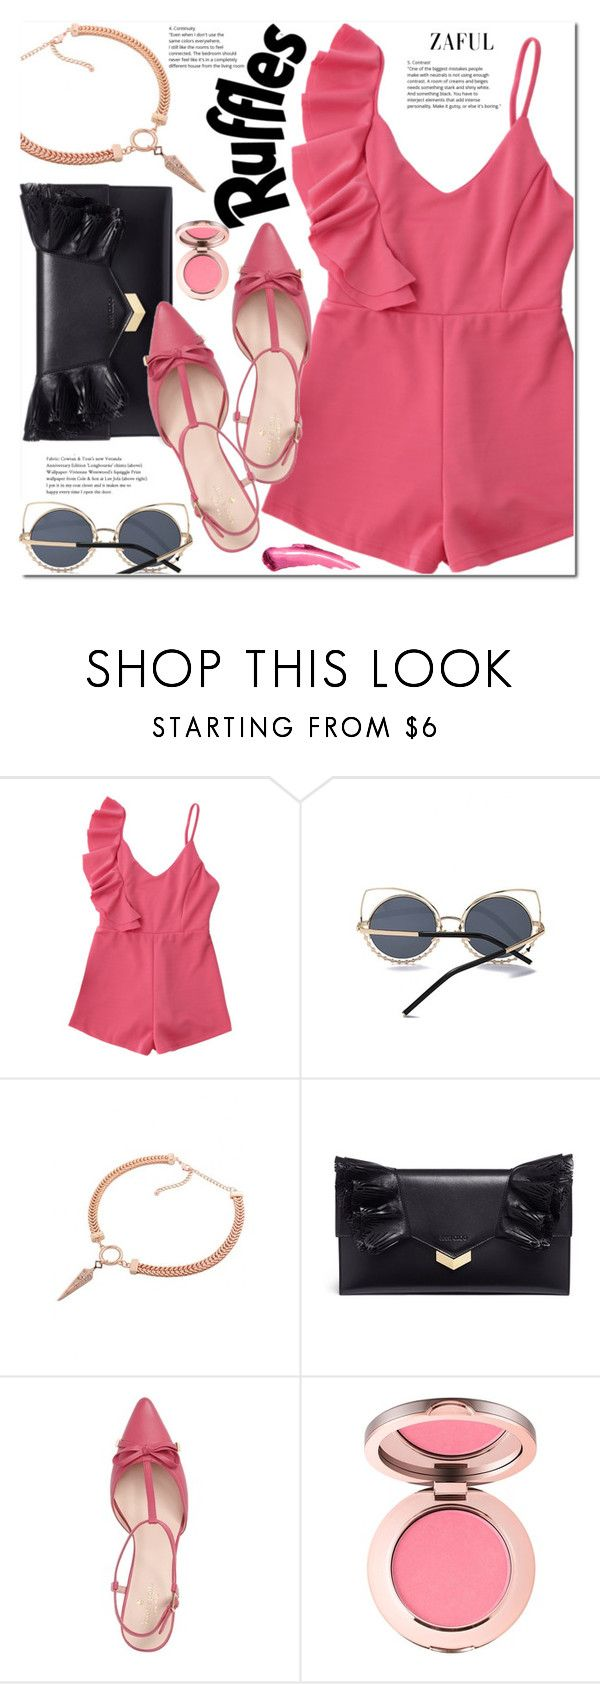 """Ruffle romper"" by duma-duma ❤ liked on Polyvore featuring Jimmy Choo and Kate Spade"